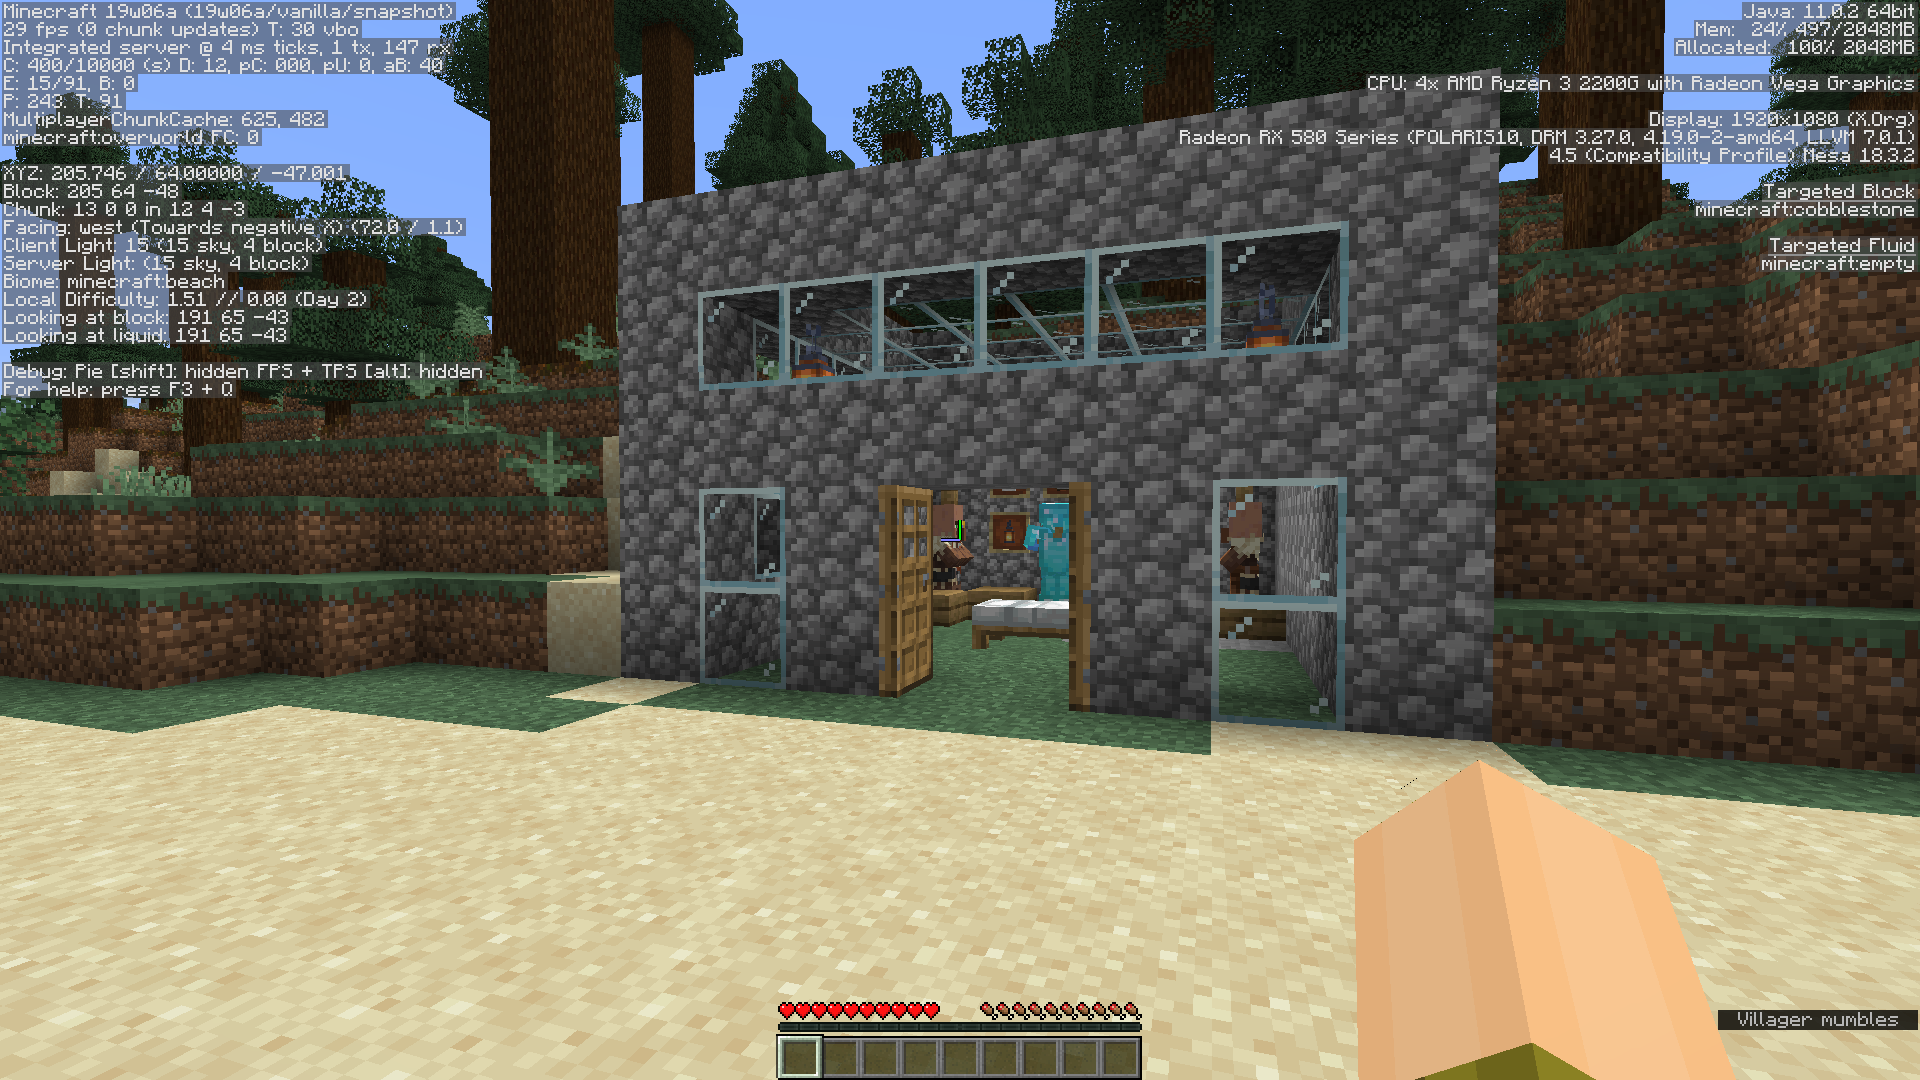 MC-143912] Item frames, armor stands, villagers near bed spawn